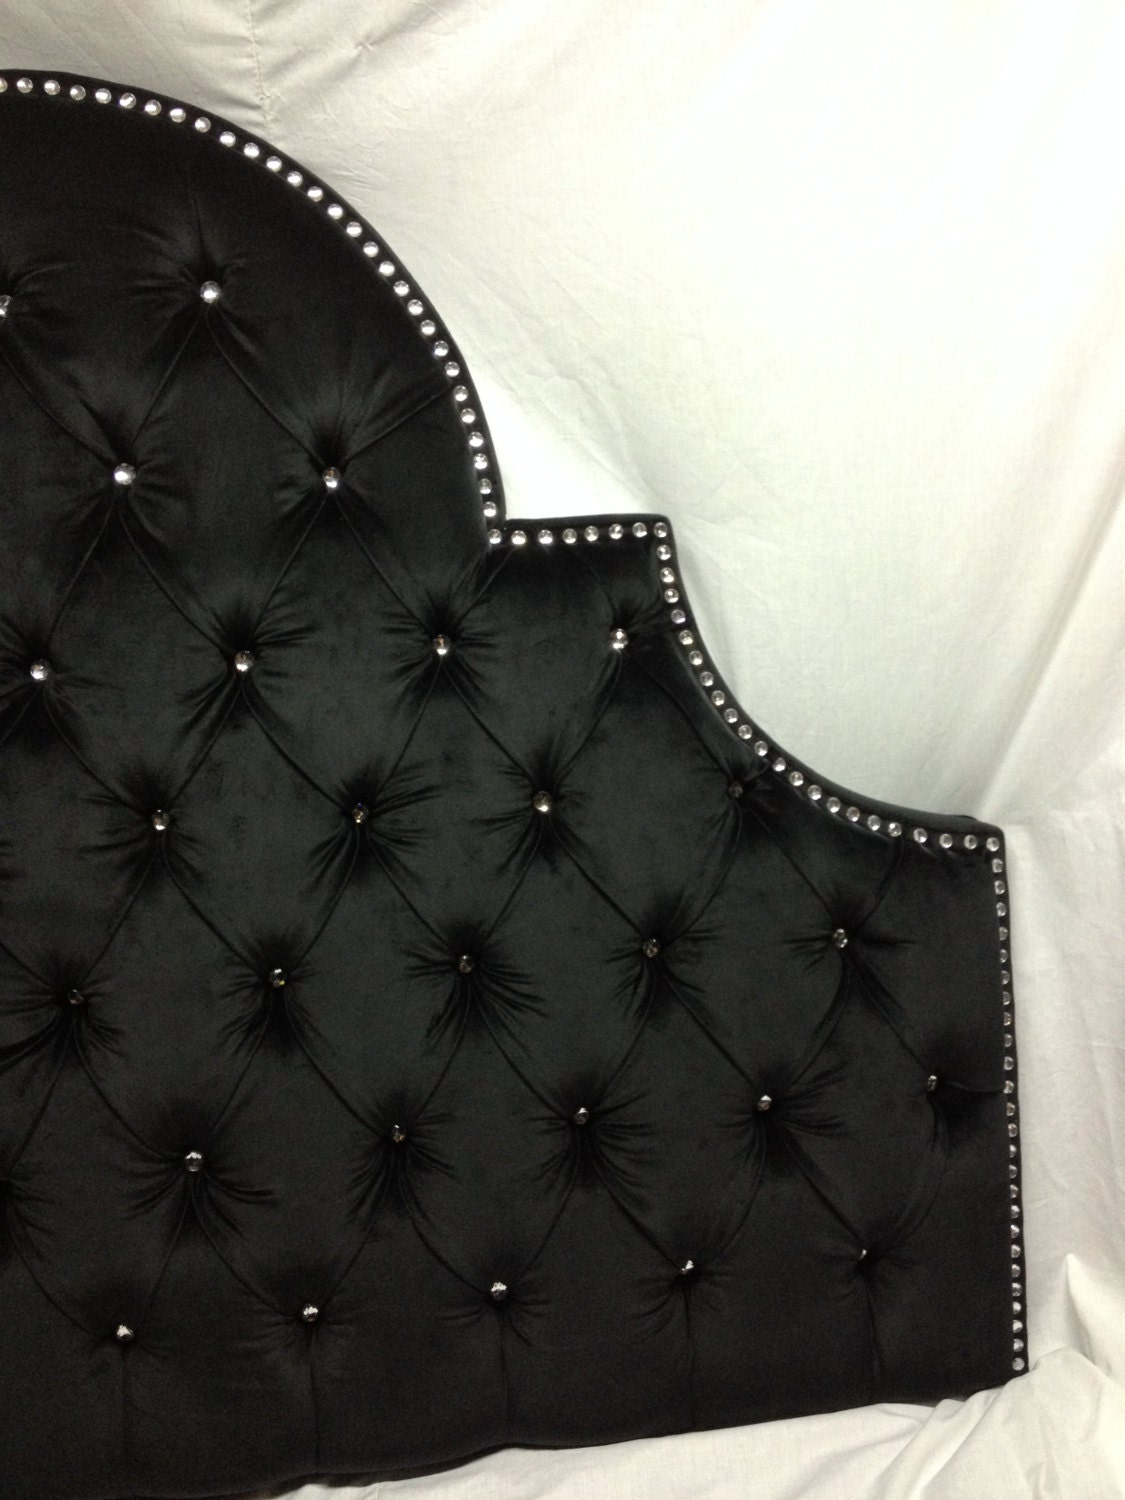 Night Sky Tufted Headboard With Rhinestones Queen By